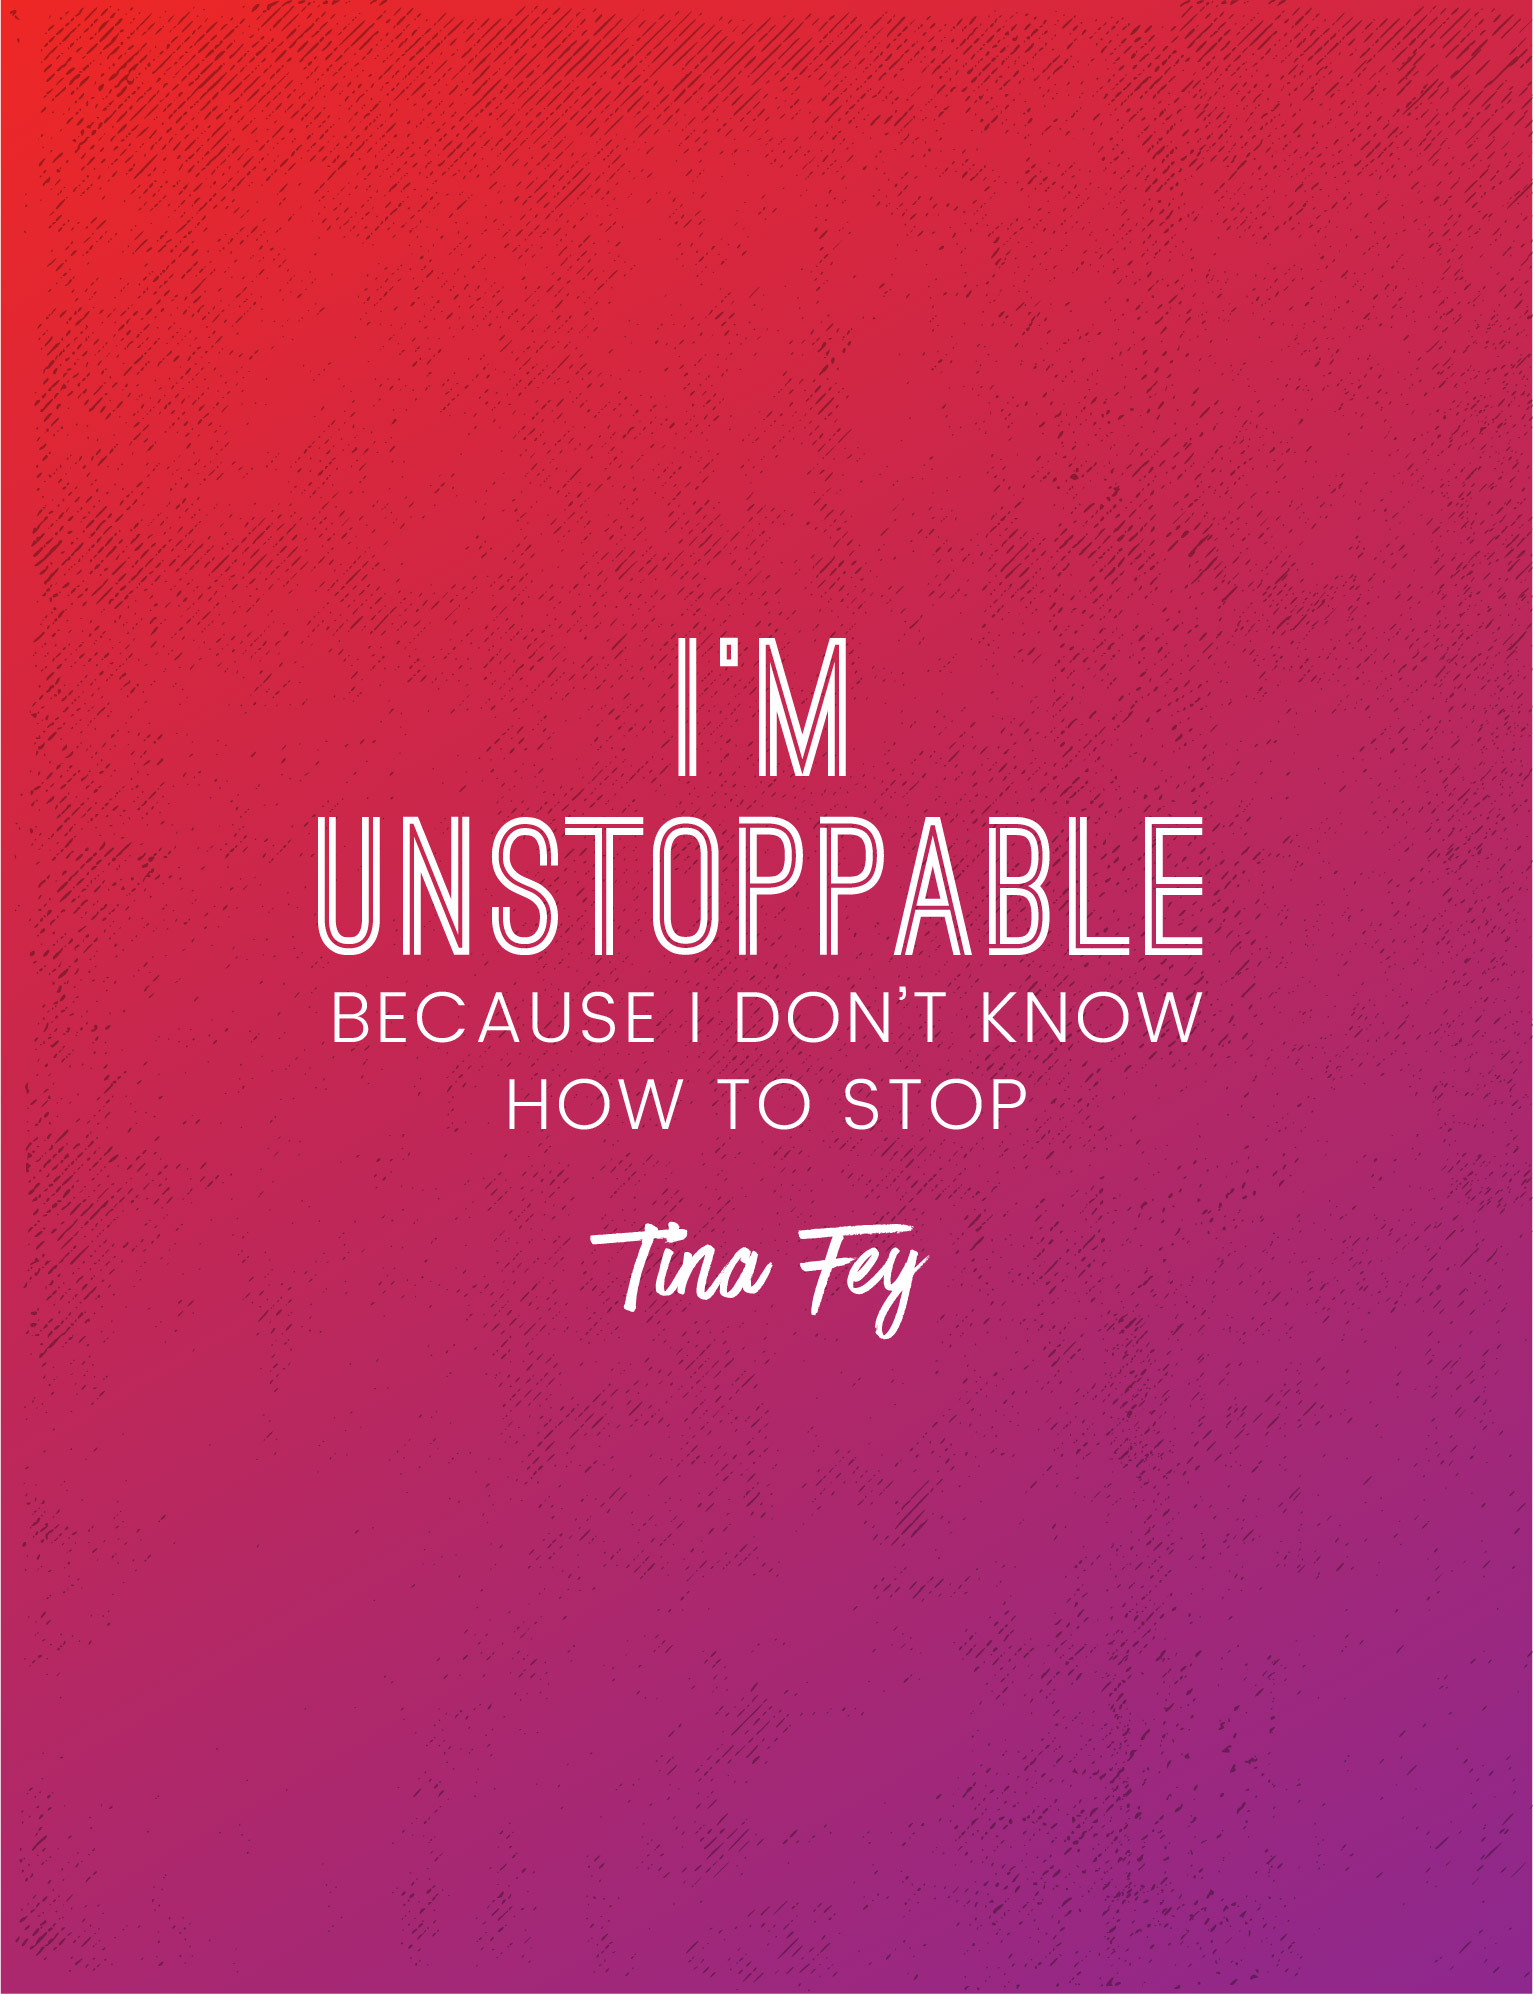 I'm unstoppable because I don't know how to stop